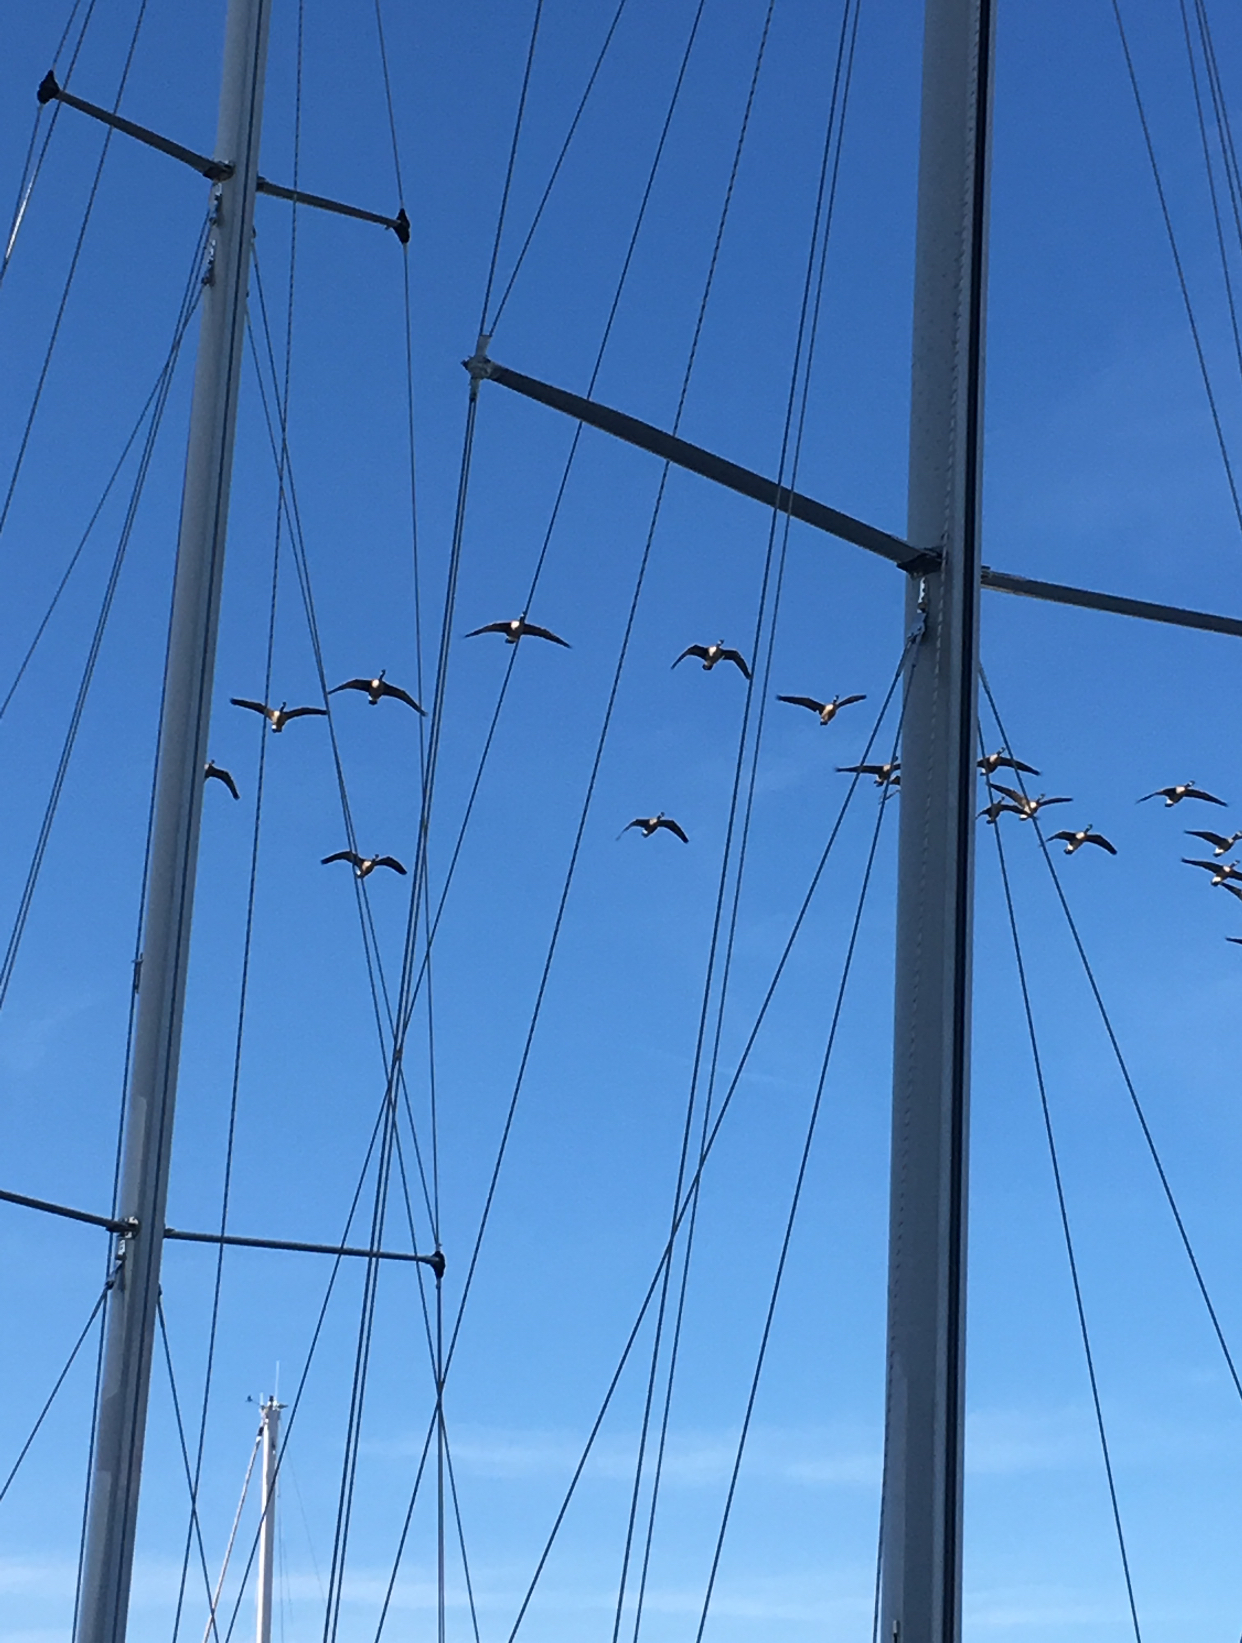 Blue sky with masts and rigging and a flock of birds